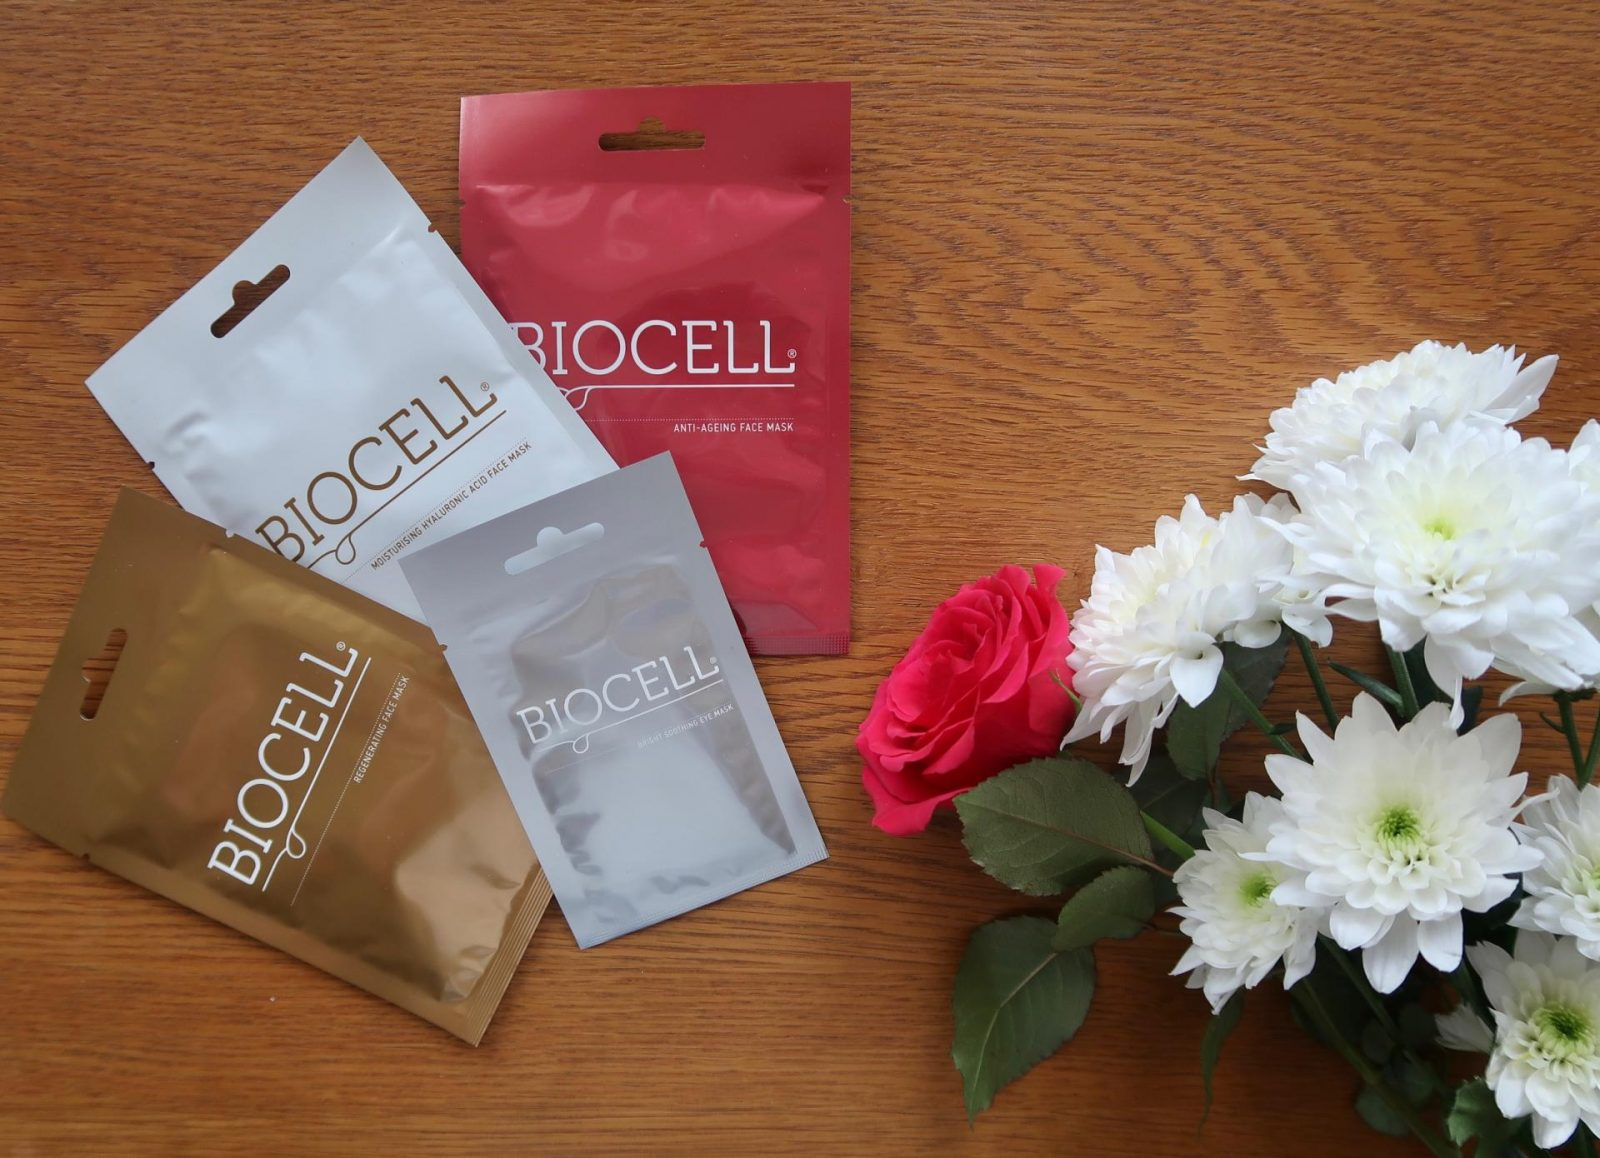 BioCell Facial Masks **REVIEW**